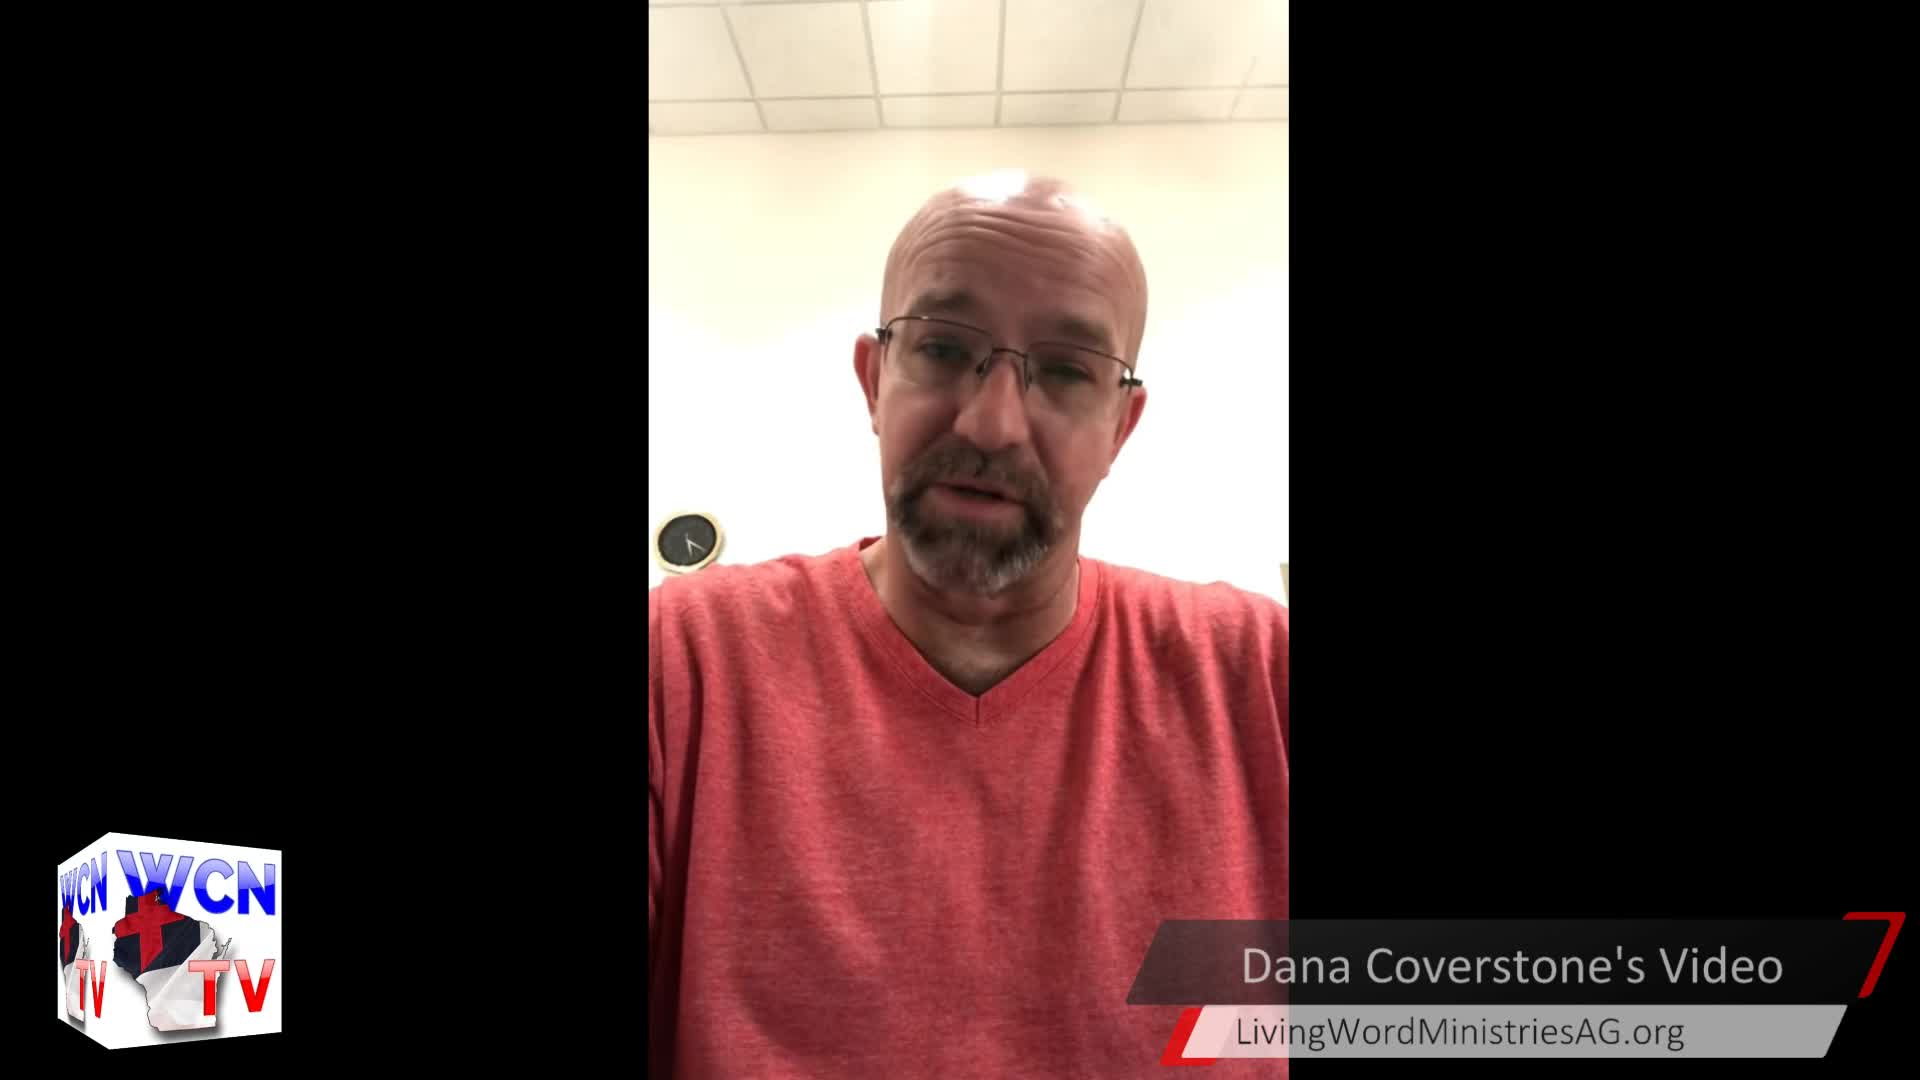 WCN-TV - October 7, 2020 - with Rob Pue and Guest Pastor Dana Coverstone